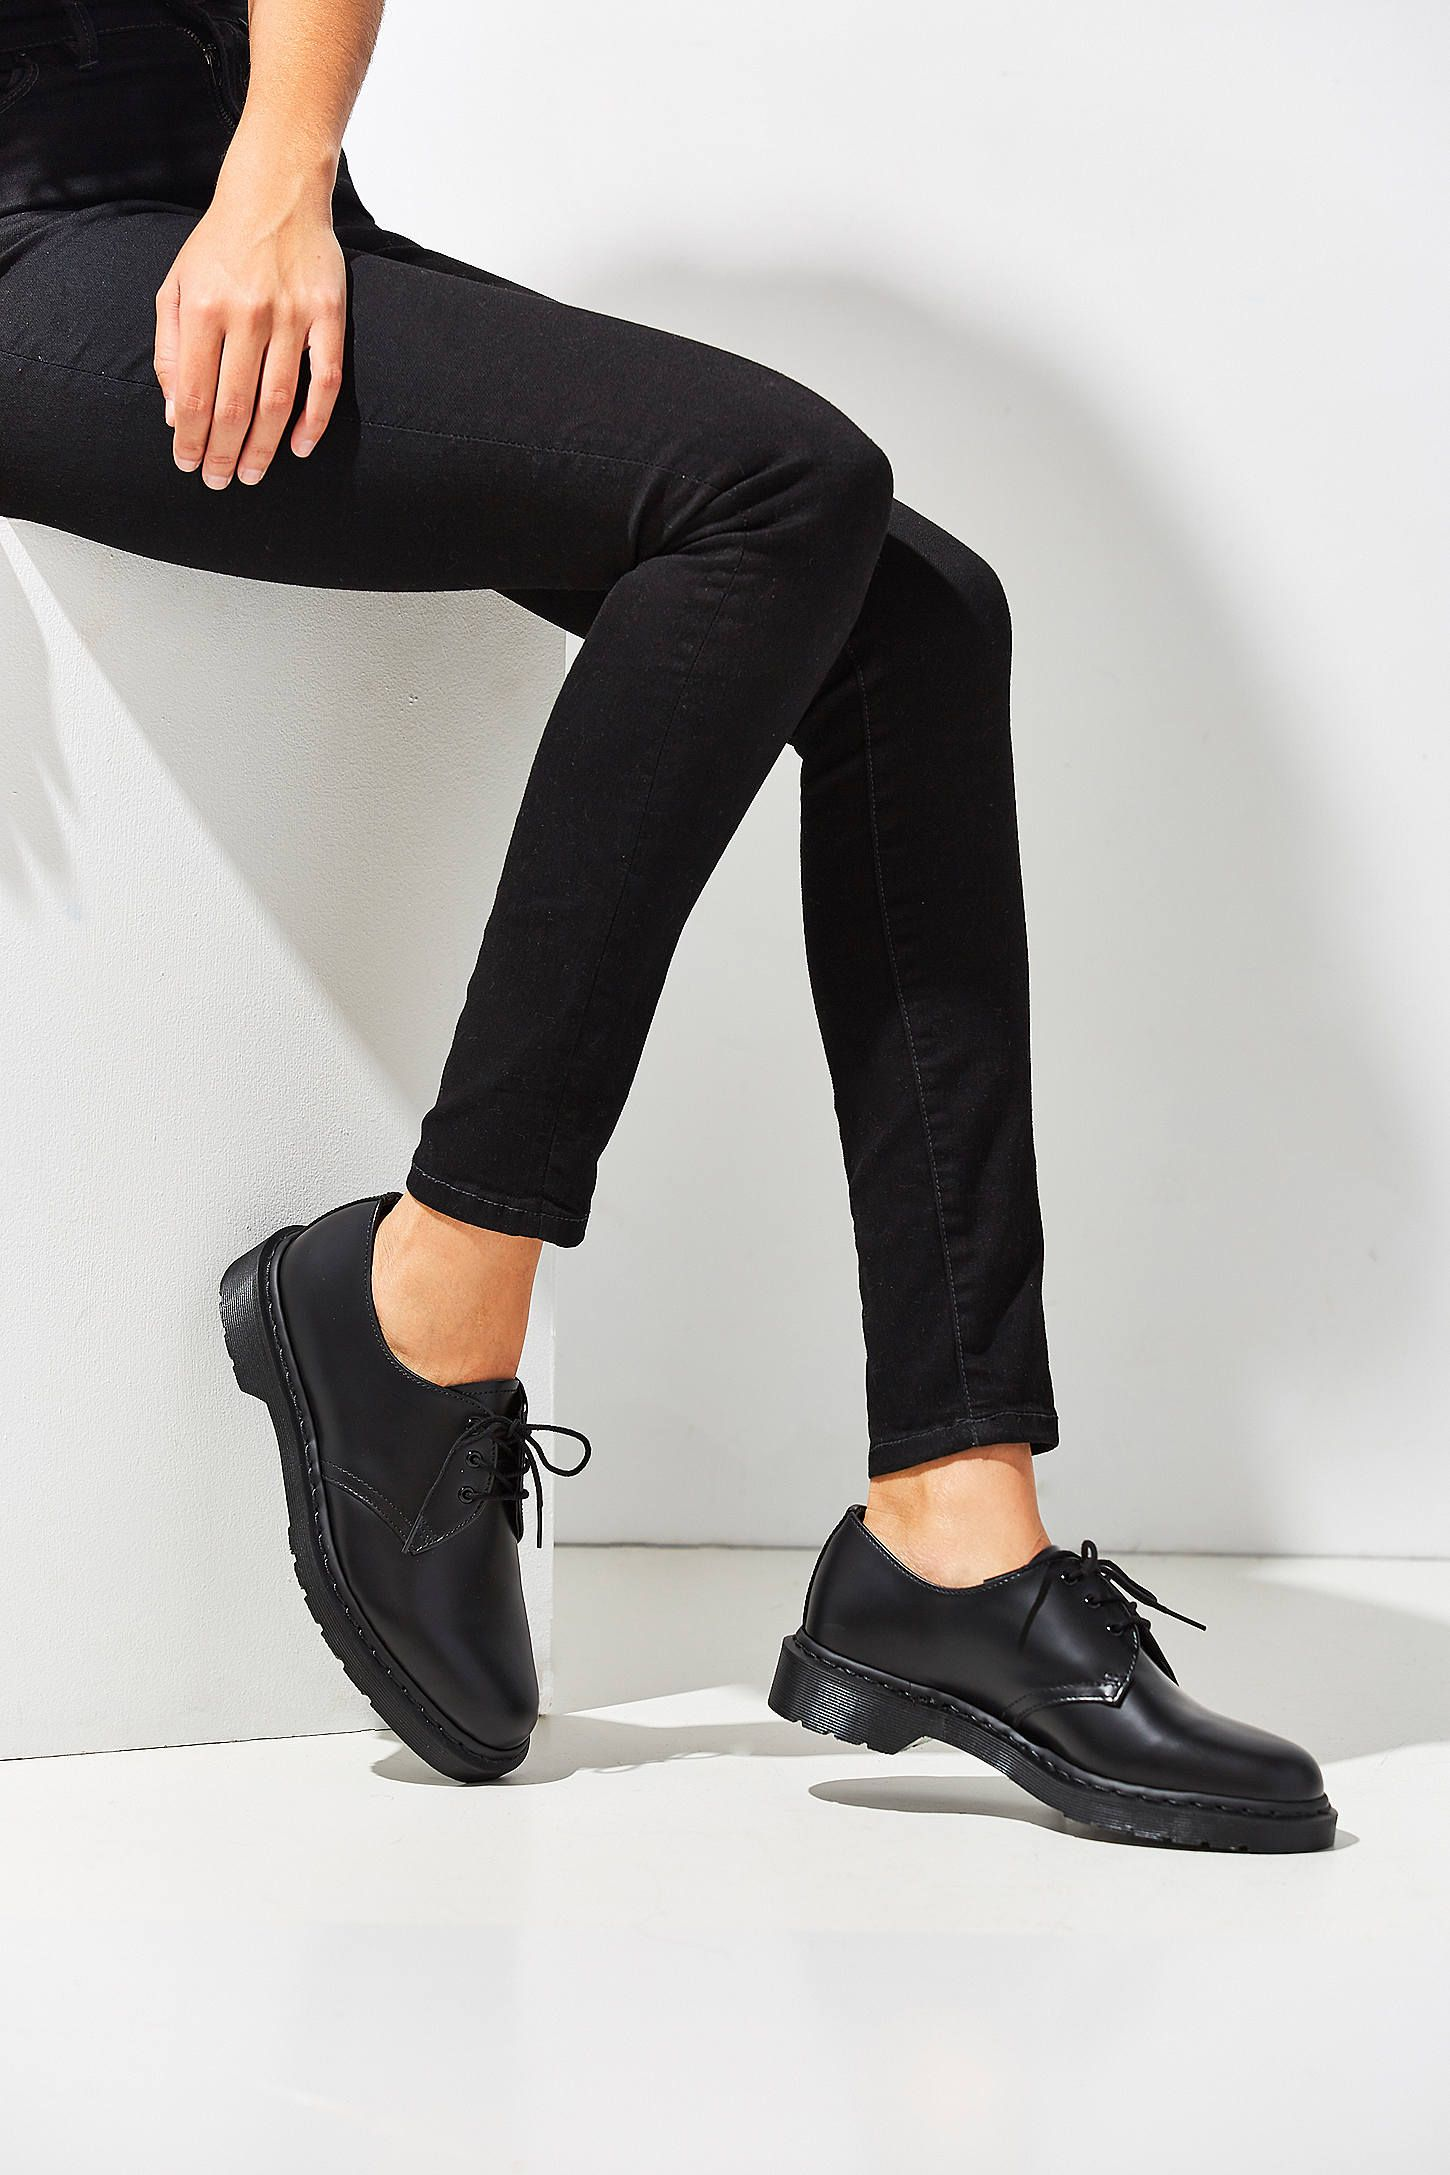 318603efcc Shop Dr. Martens 1461 Mono 3-Eye Oxford at Urban Outfitters today. We carry  all the latest styles